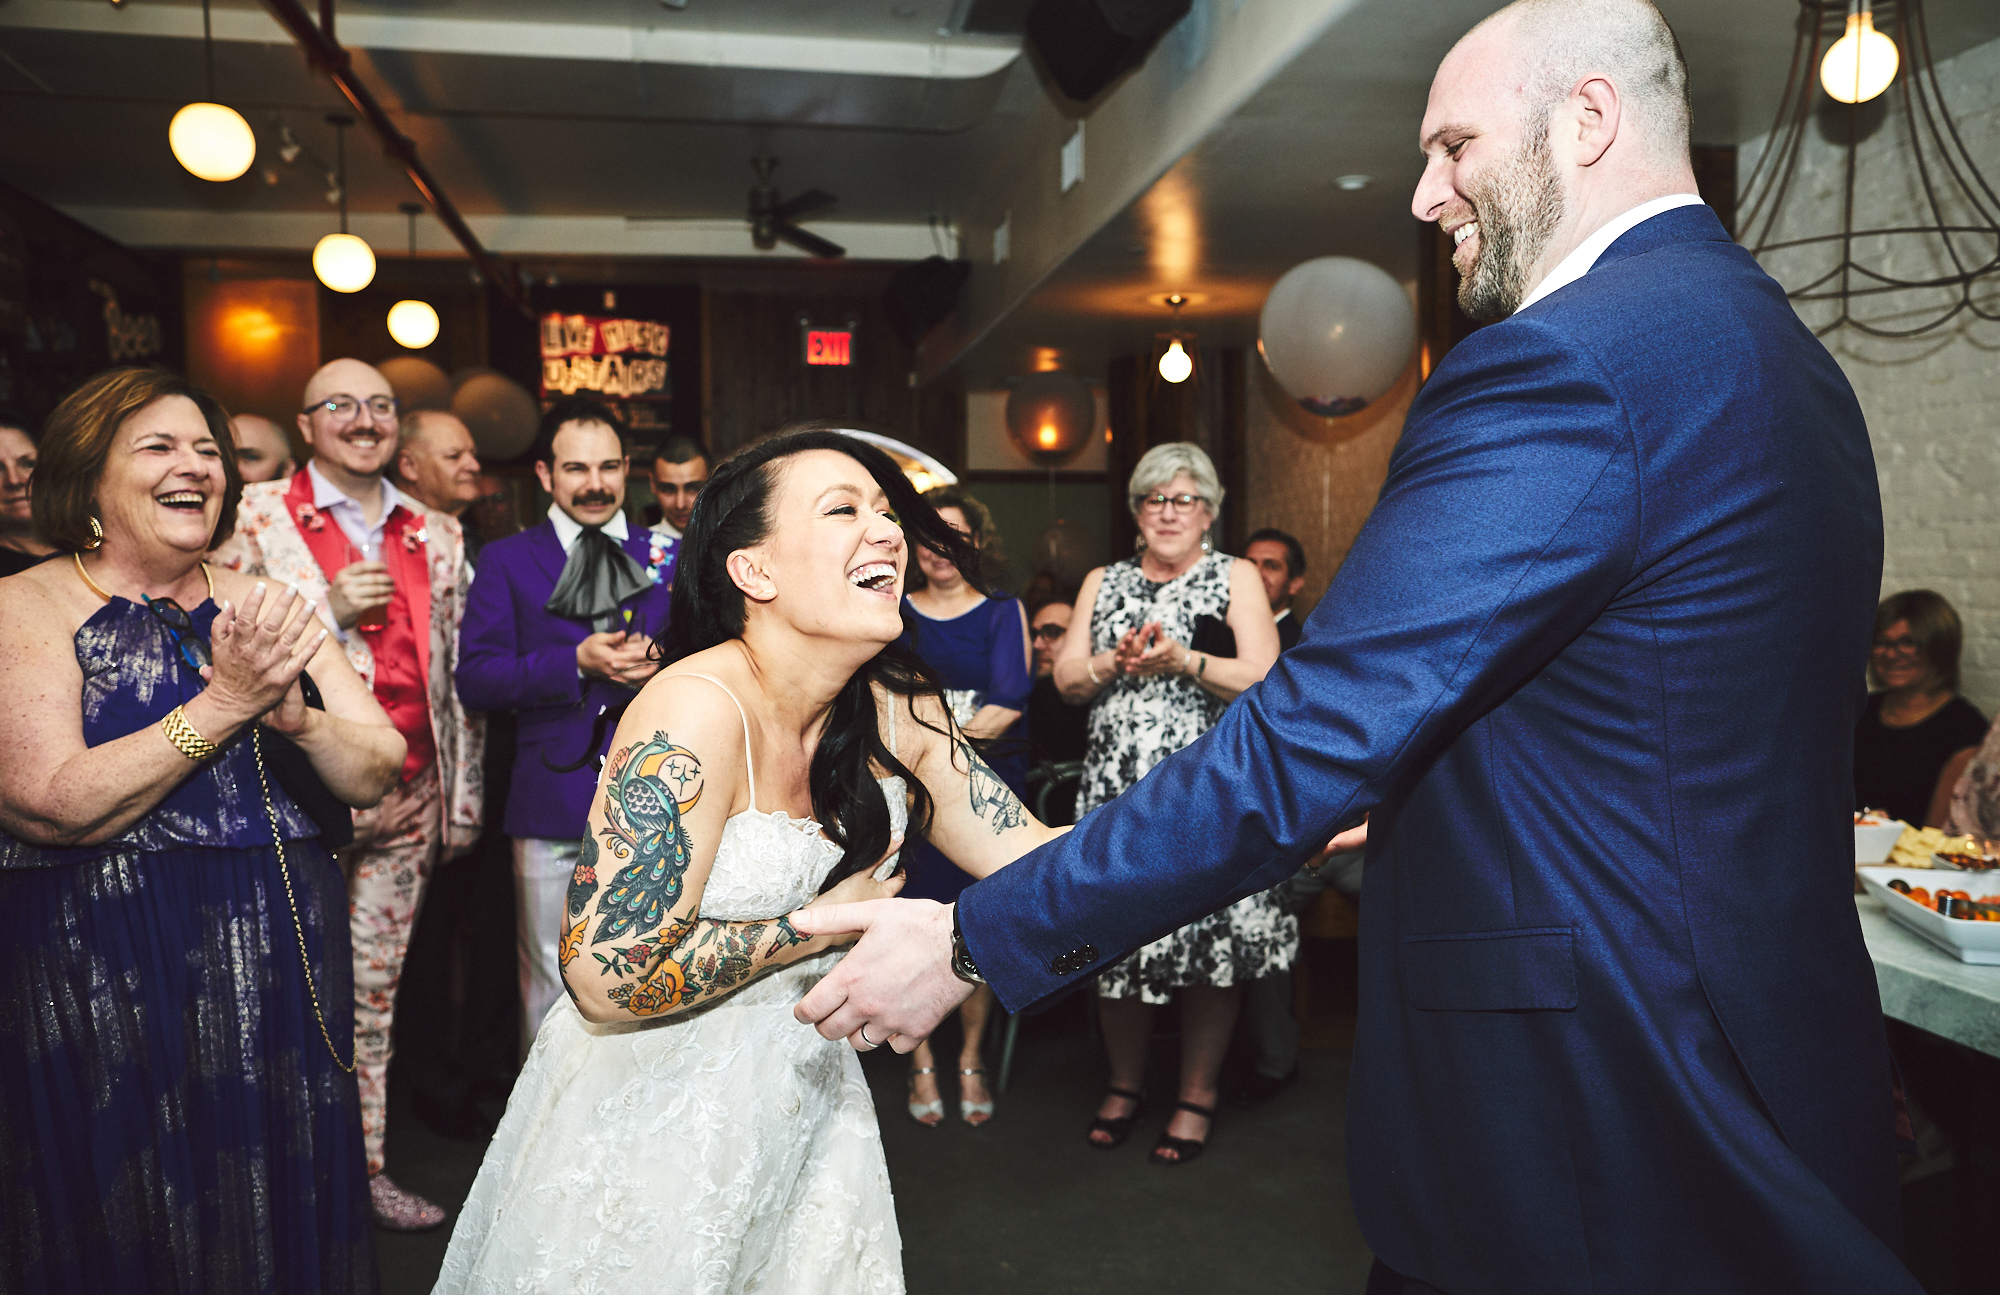 190518_SpringThreesBreweryWedding_By_BriJohnsonWeddings_0111.jpg